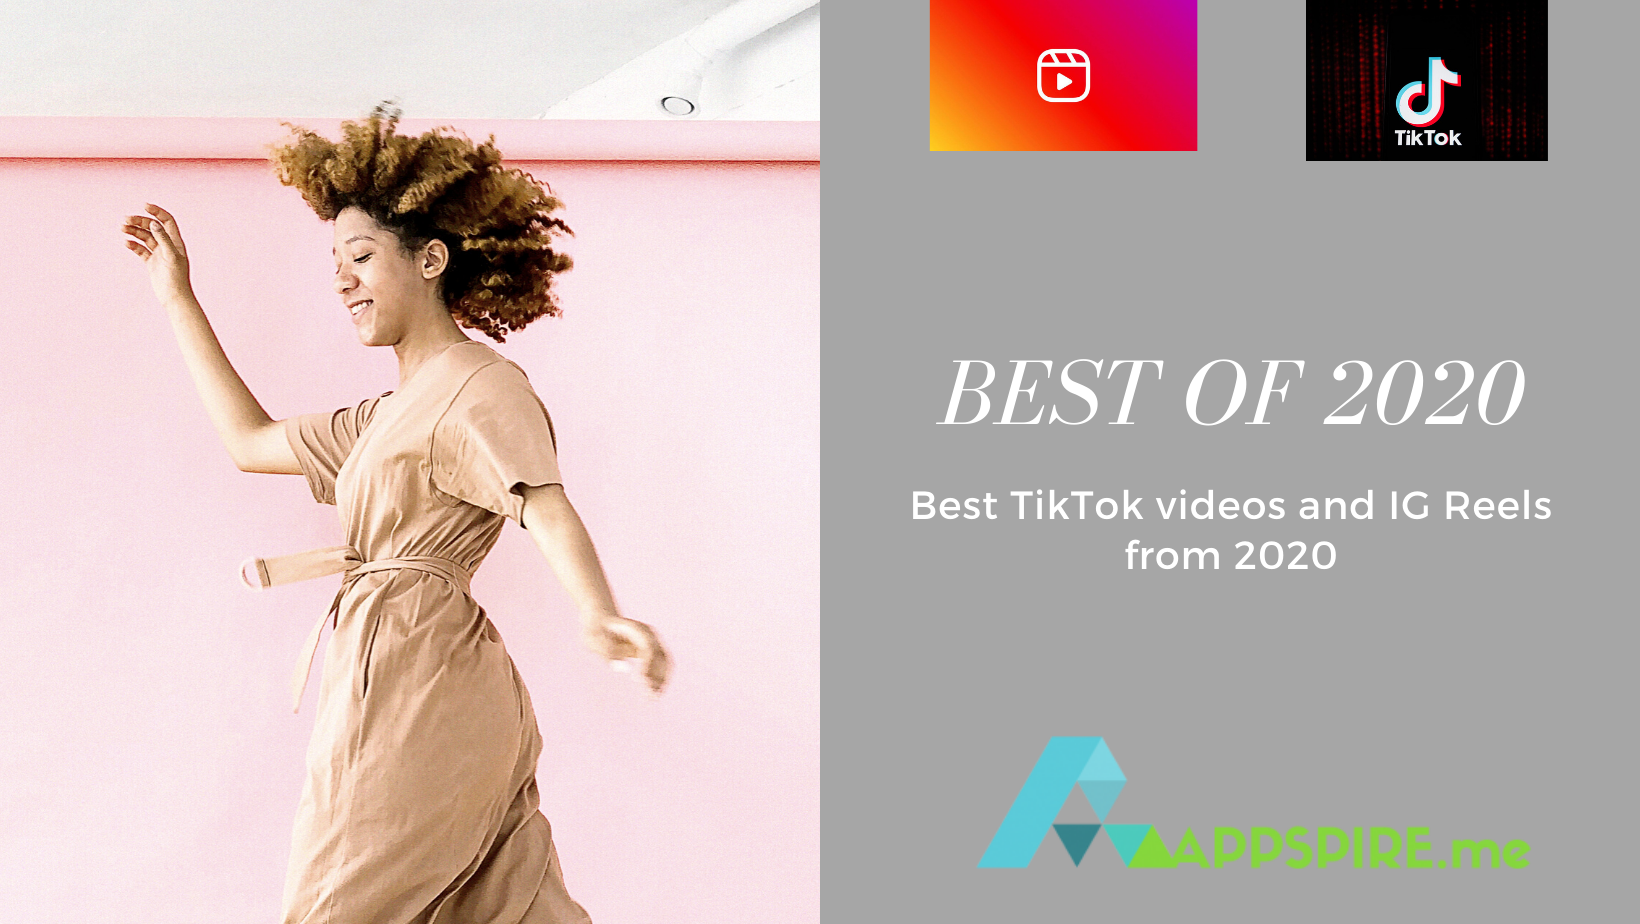 The Best of 2020: TikTok and IG Reels